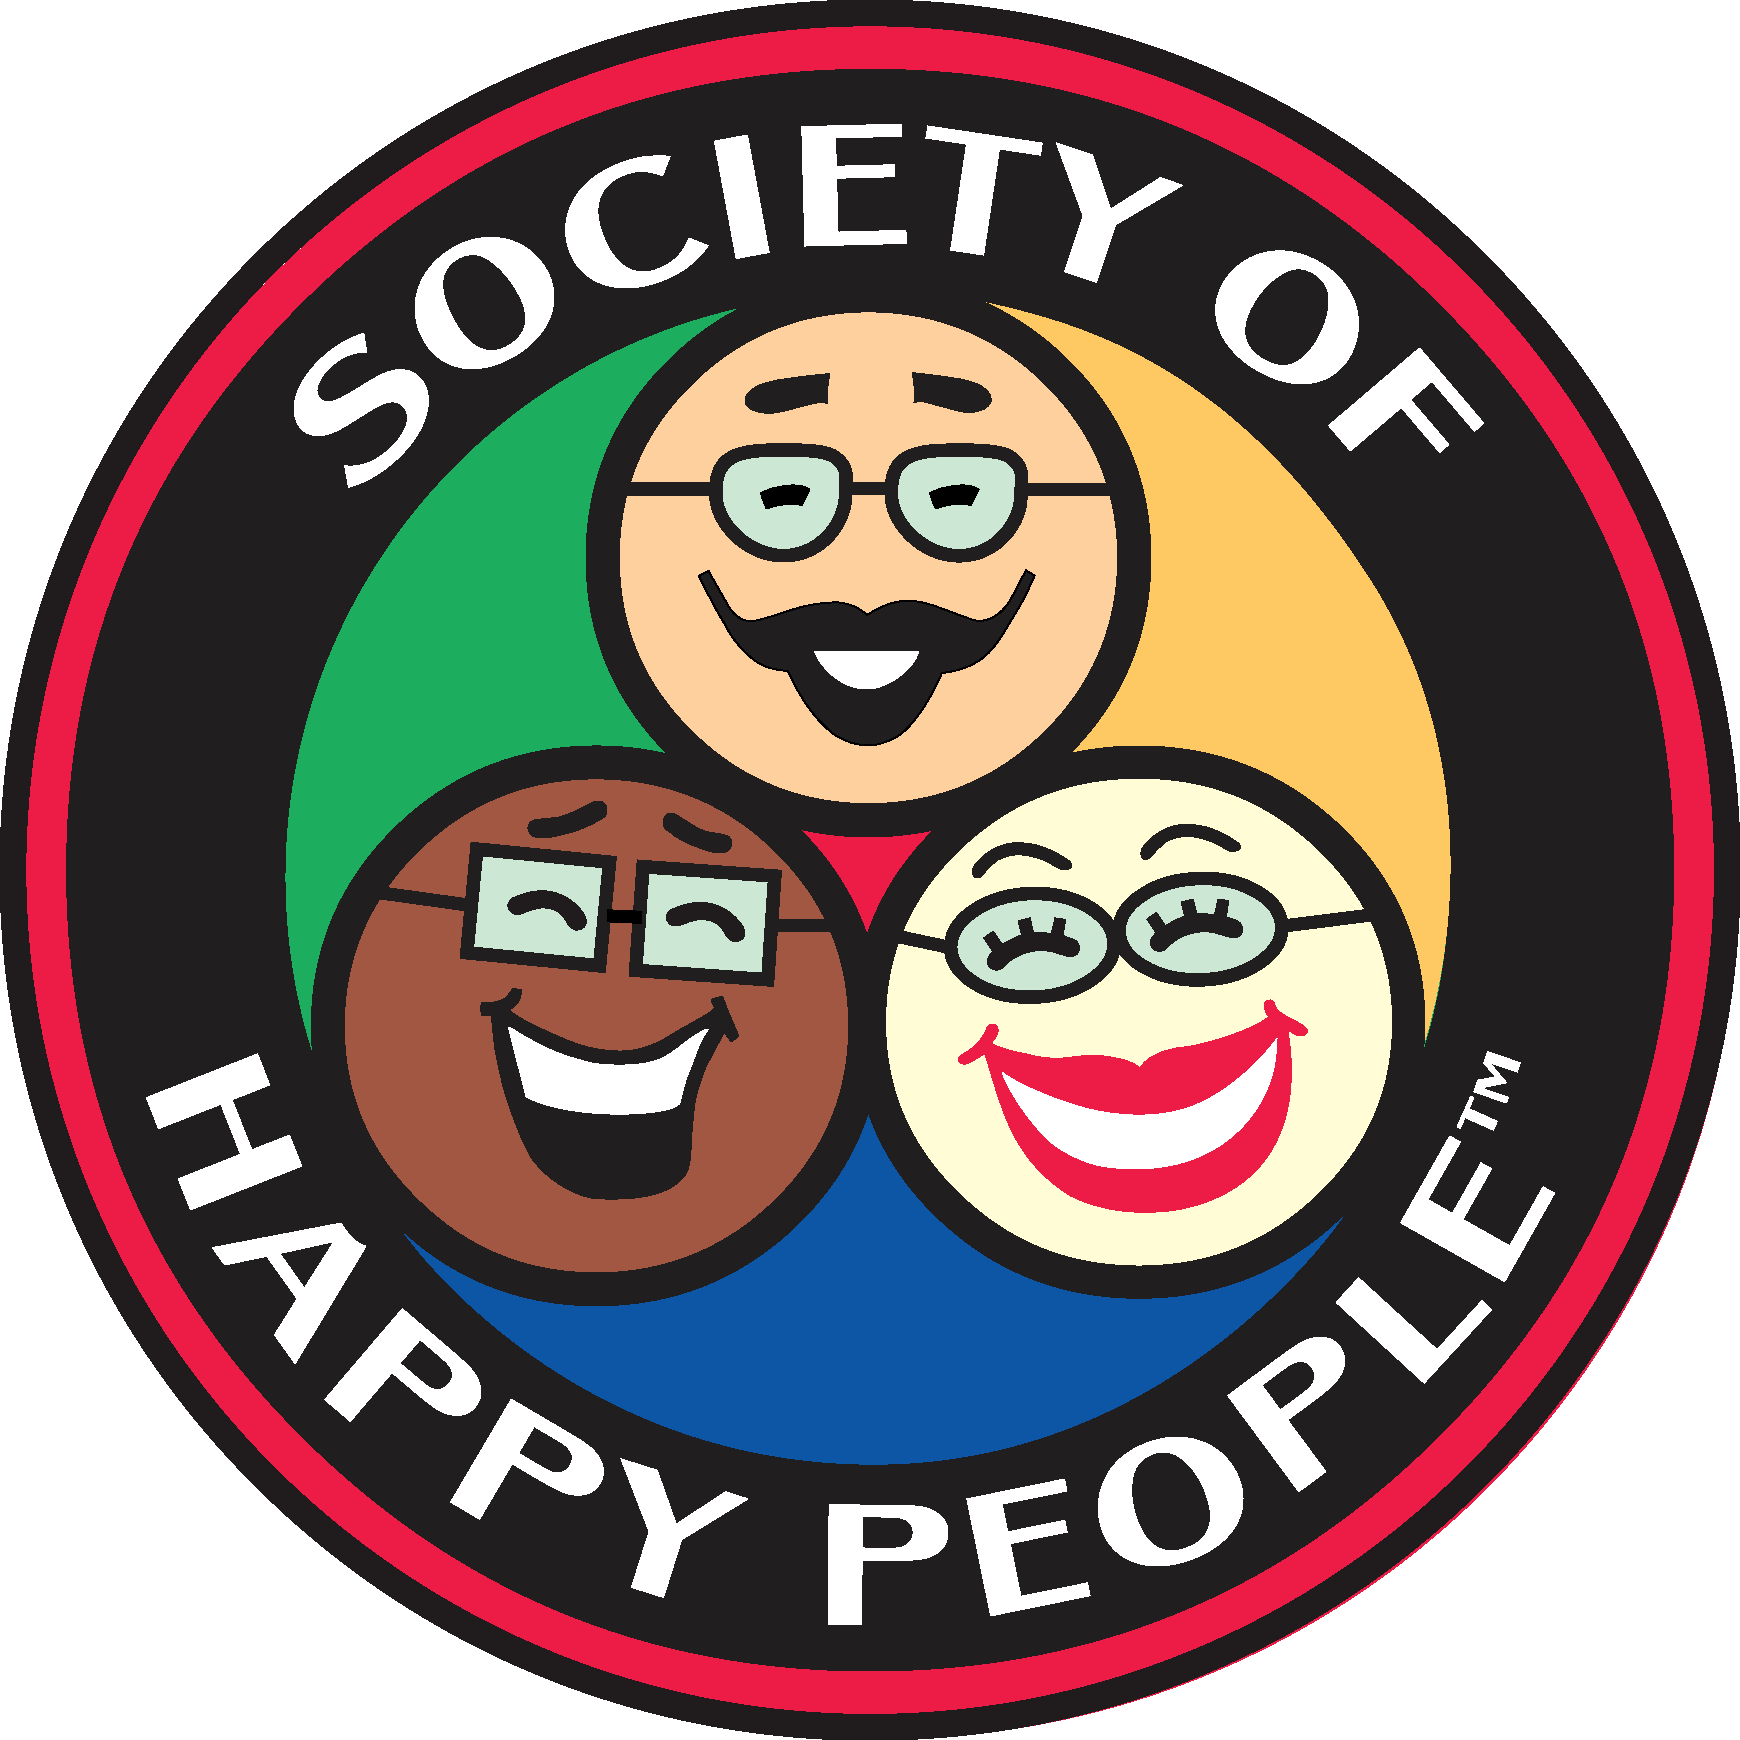 Society Of Happy People